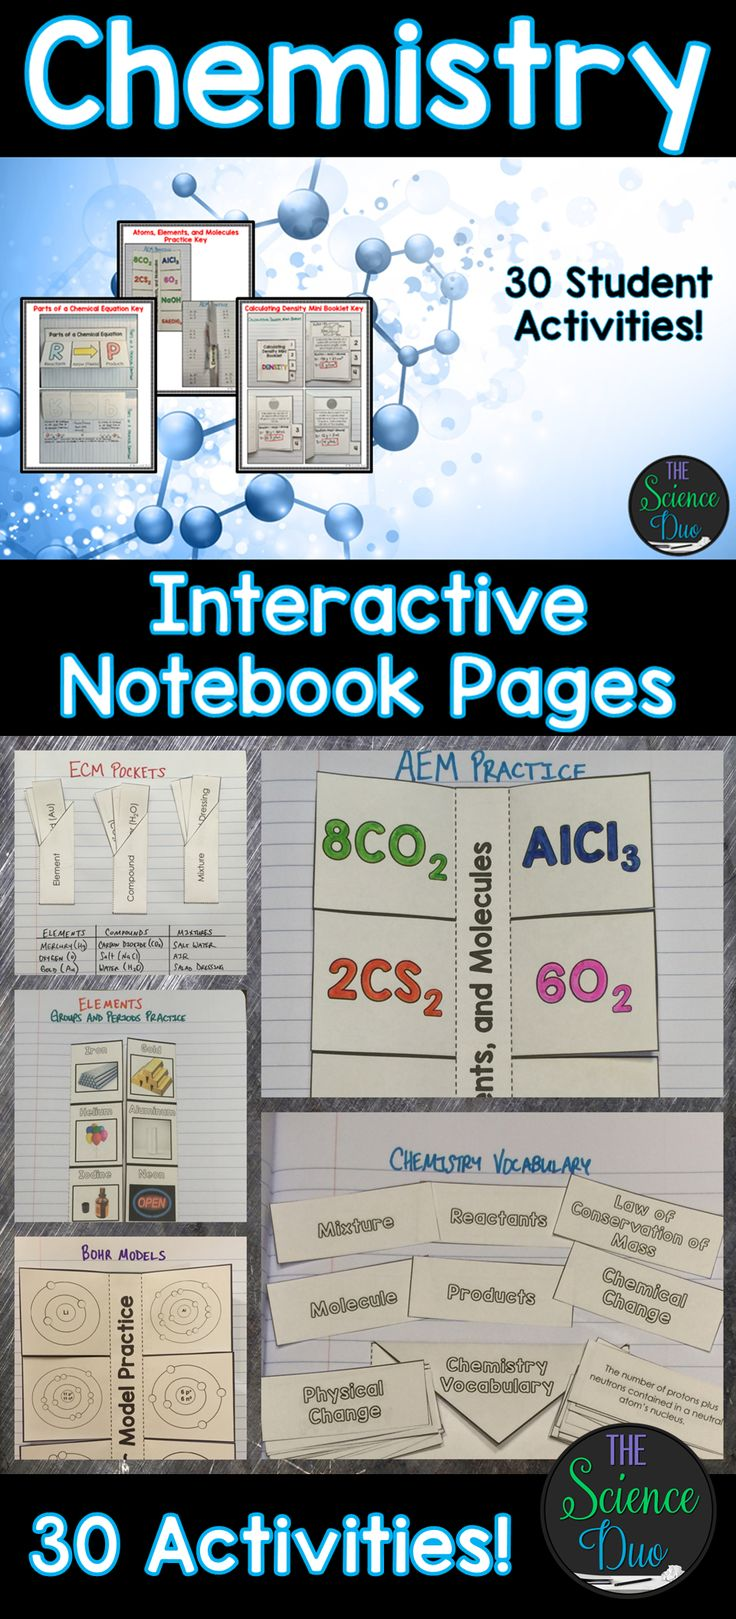 Classroom Interactive Ideas ~ Best ideas about chemistry classroom on pinterest